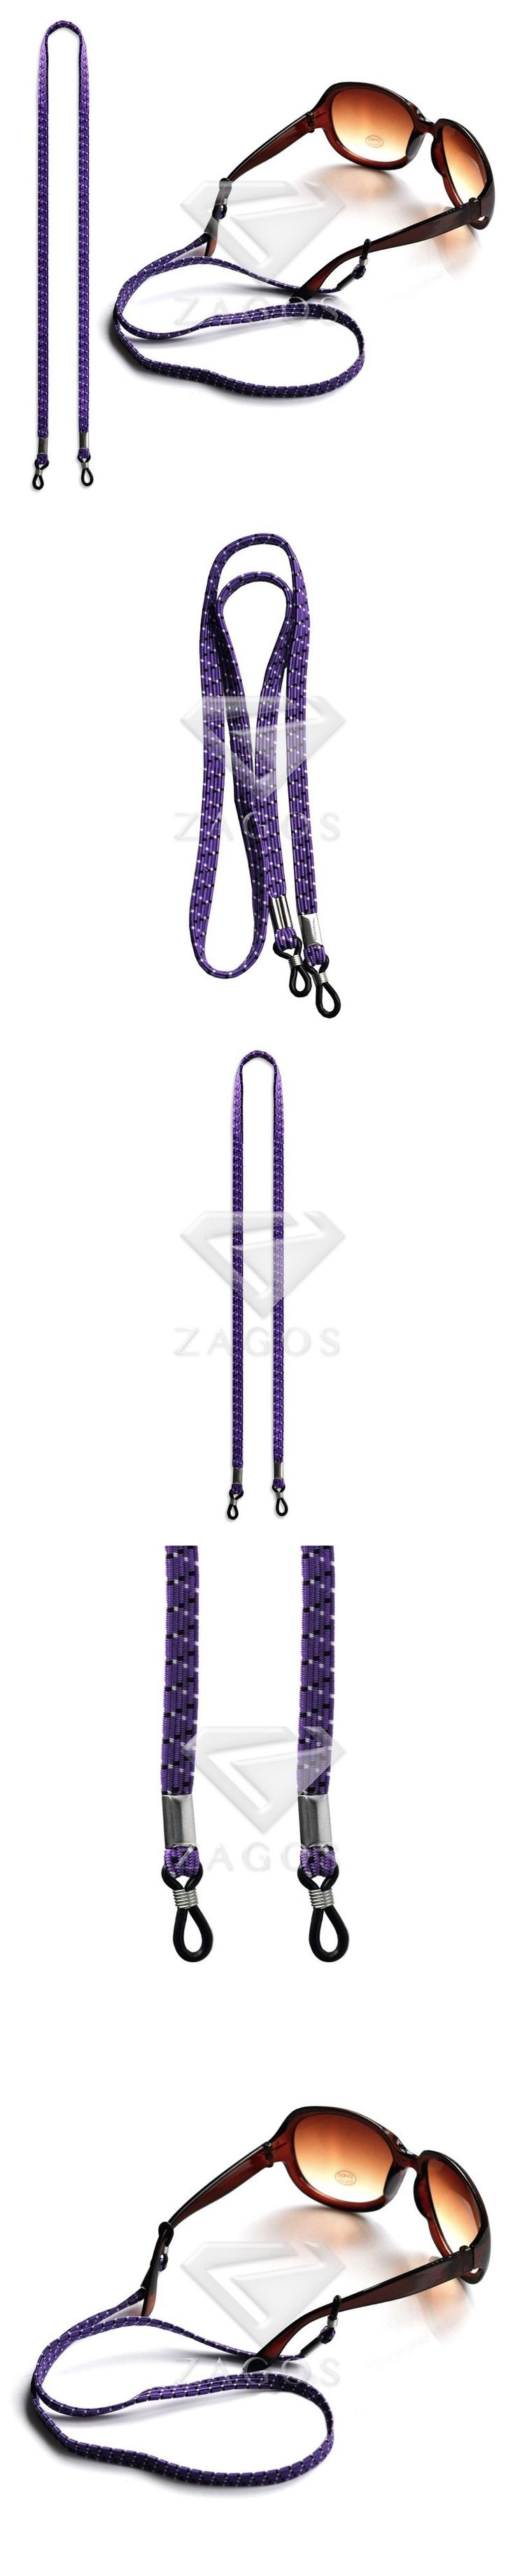 "63cm/25"" Adjustable String Purple Glasses Sunglasses Spectacle Chain Strap Cord Holder Neck Lanyard Eyeglass Wholesale EC0013"